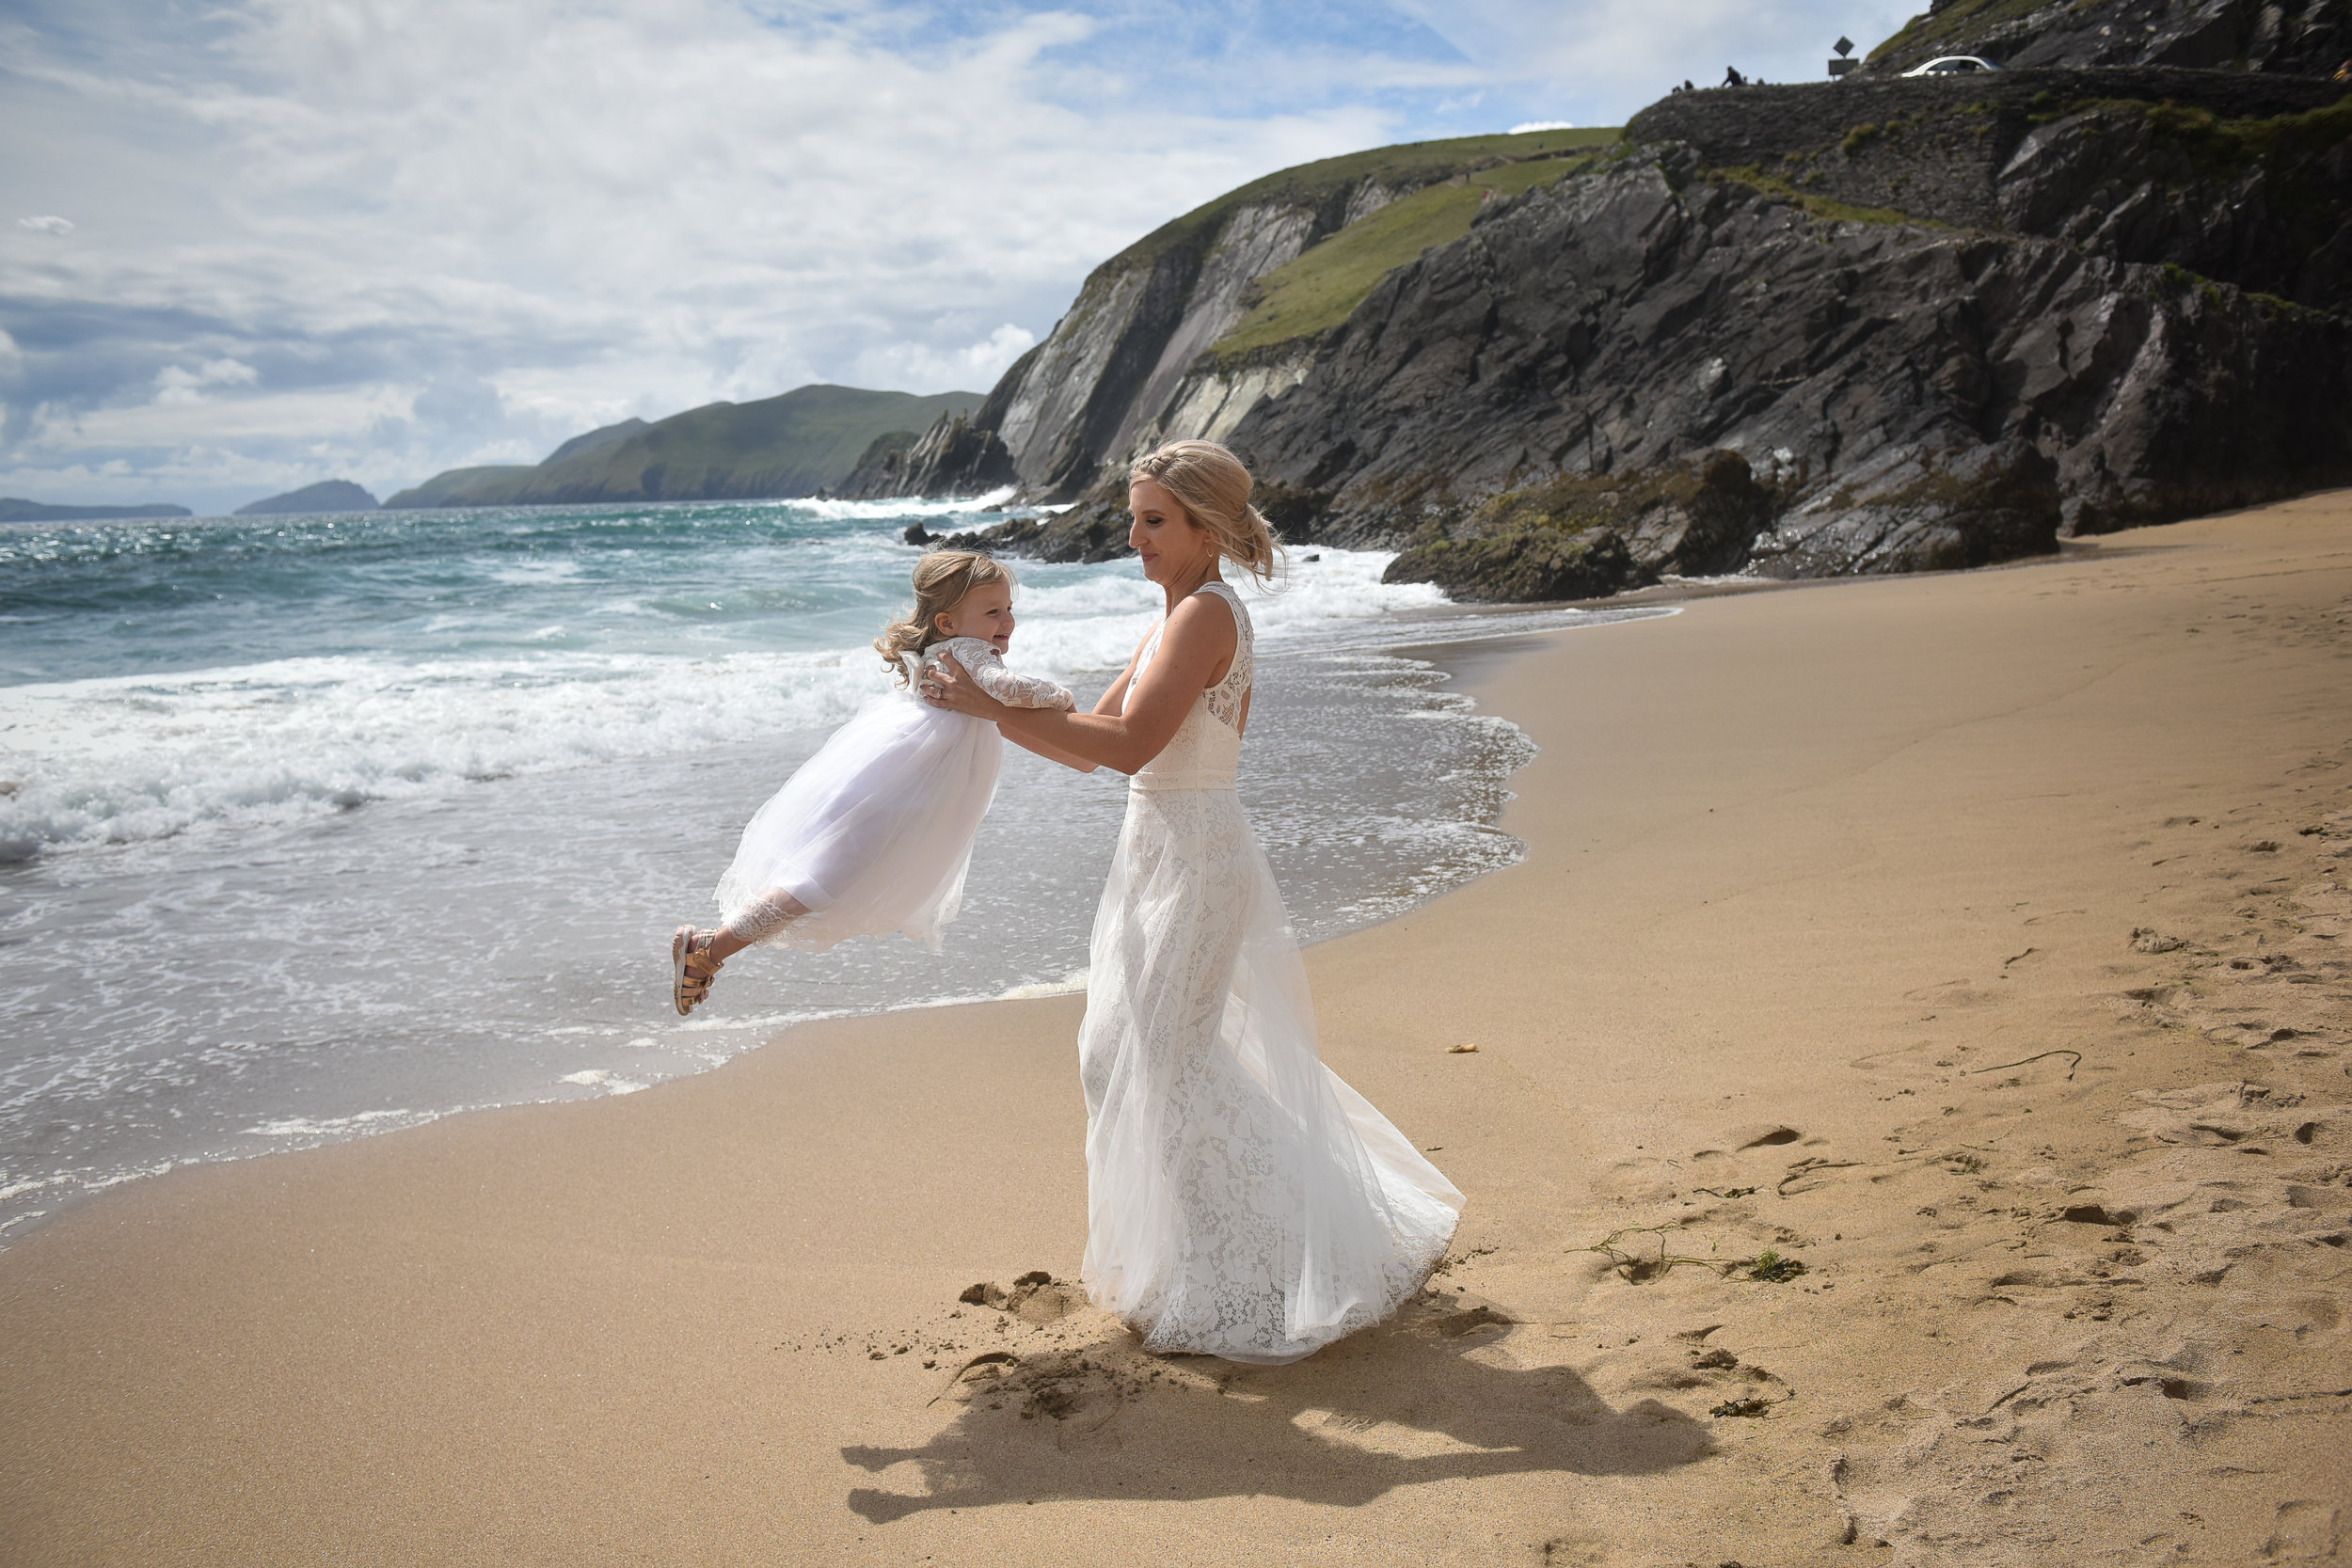 wedding coumenole beach dingle co kerry elaine kennedy wedding photography.jpg